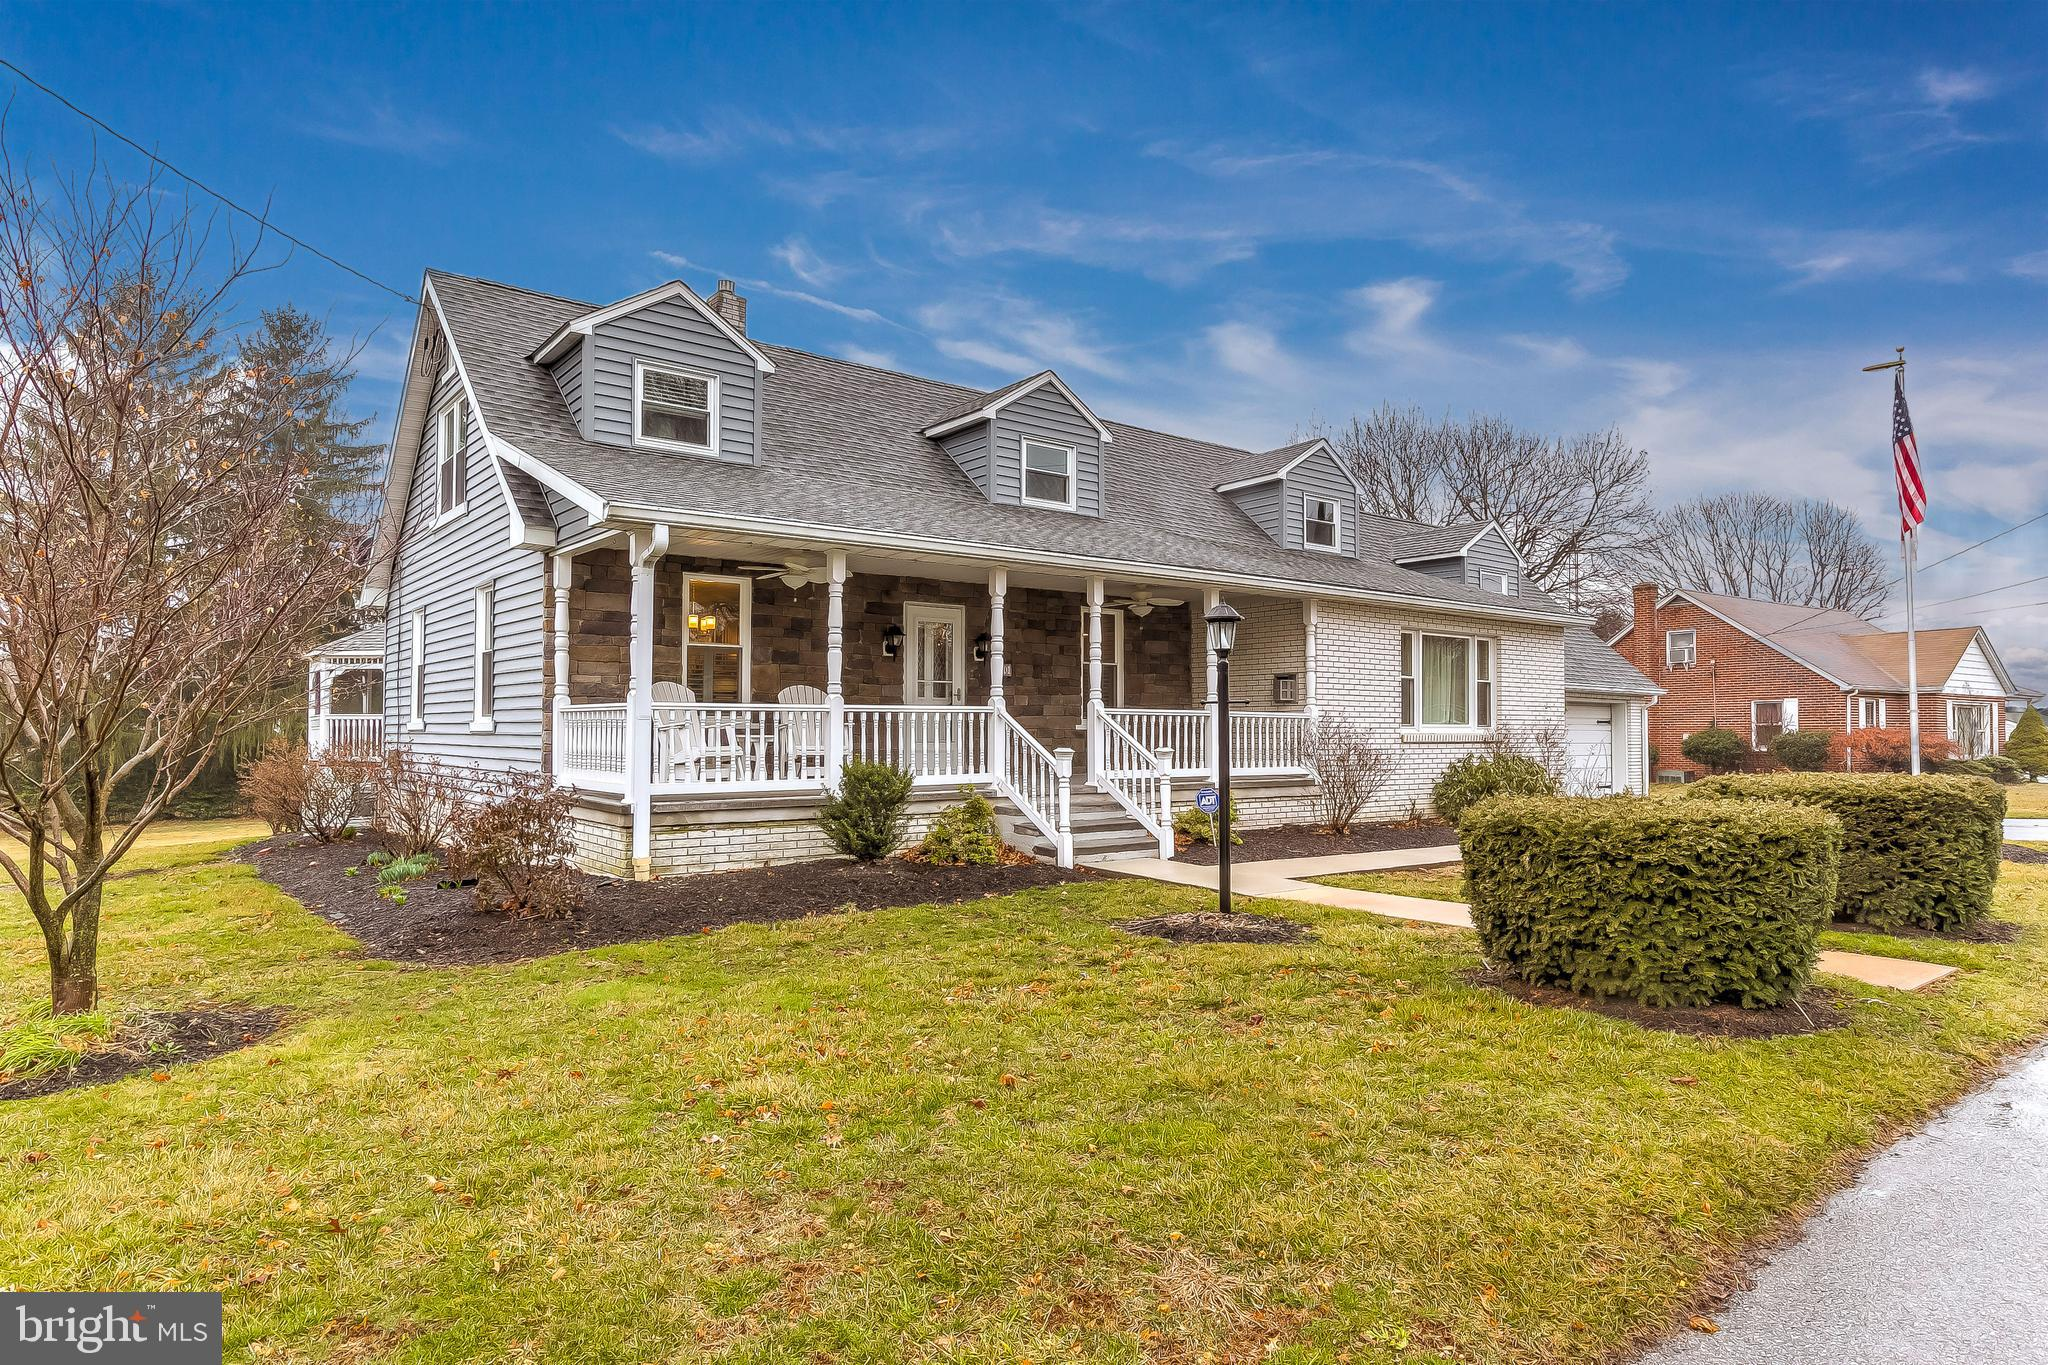 160 BOND STREET, NEW FREEDOM, PA 17349